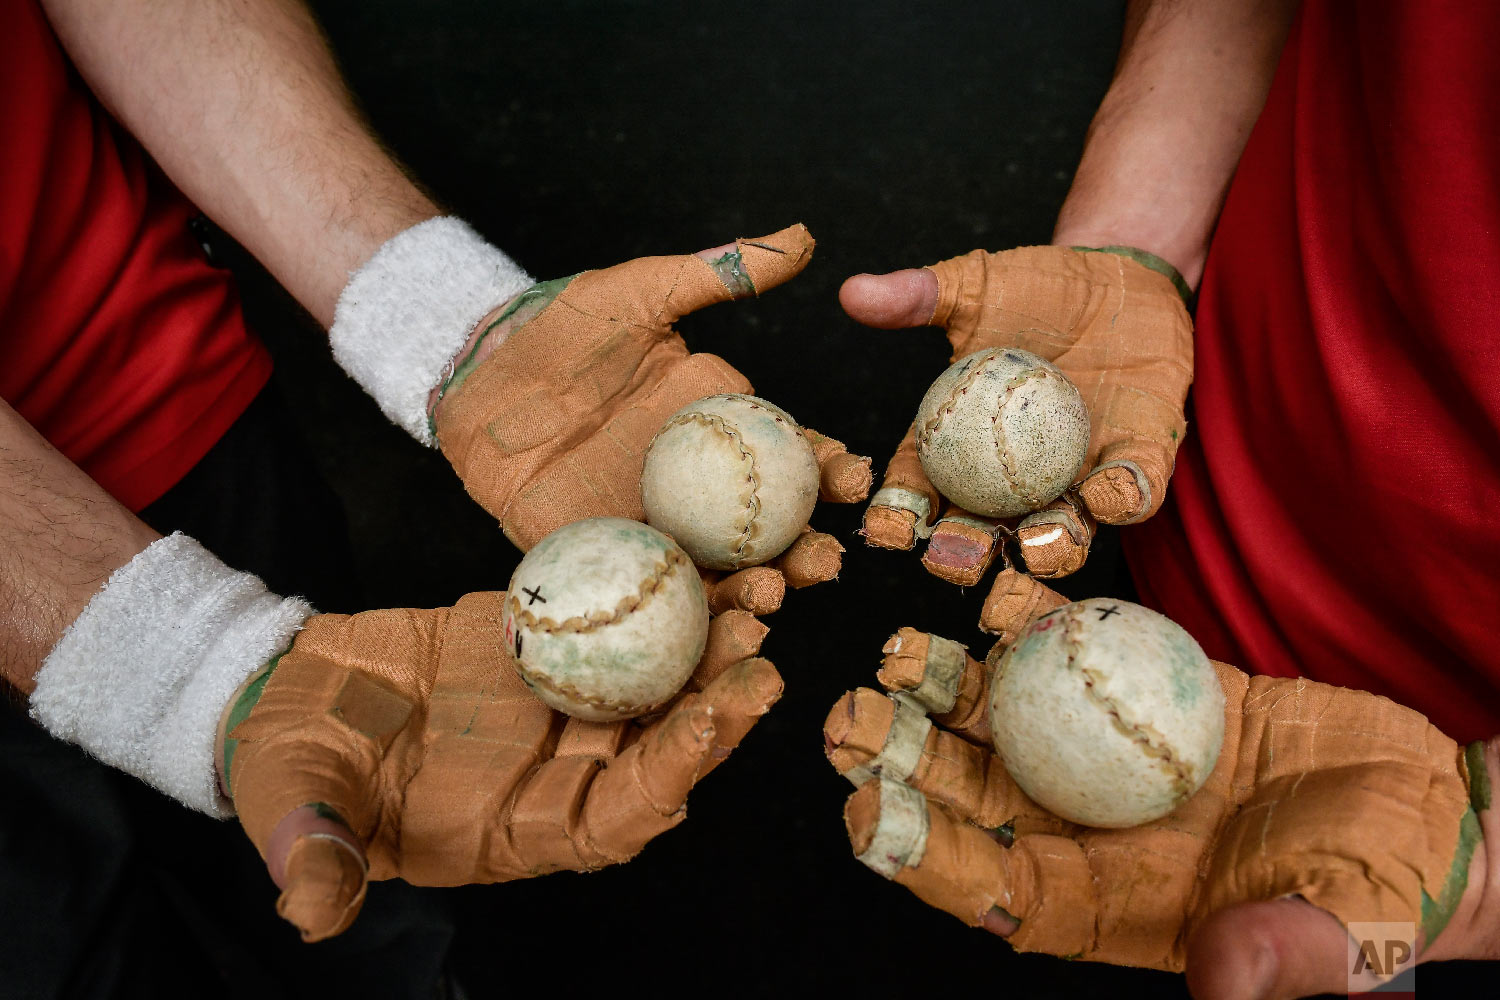 Players of Basque Ball hold balls on their hands protected by layers of tightly-bound tape, in Pamplona, northern Spain on March 5, 2019. (AP Photo/Alvaro Barrientos)